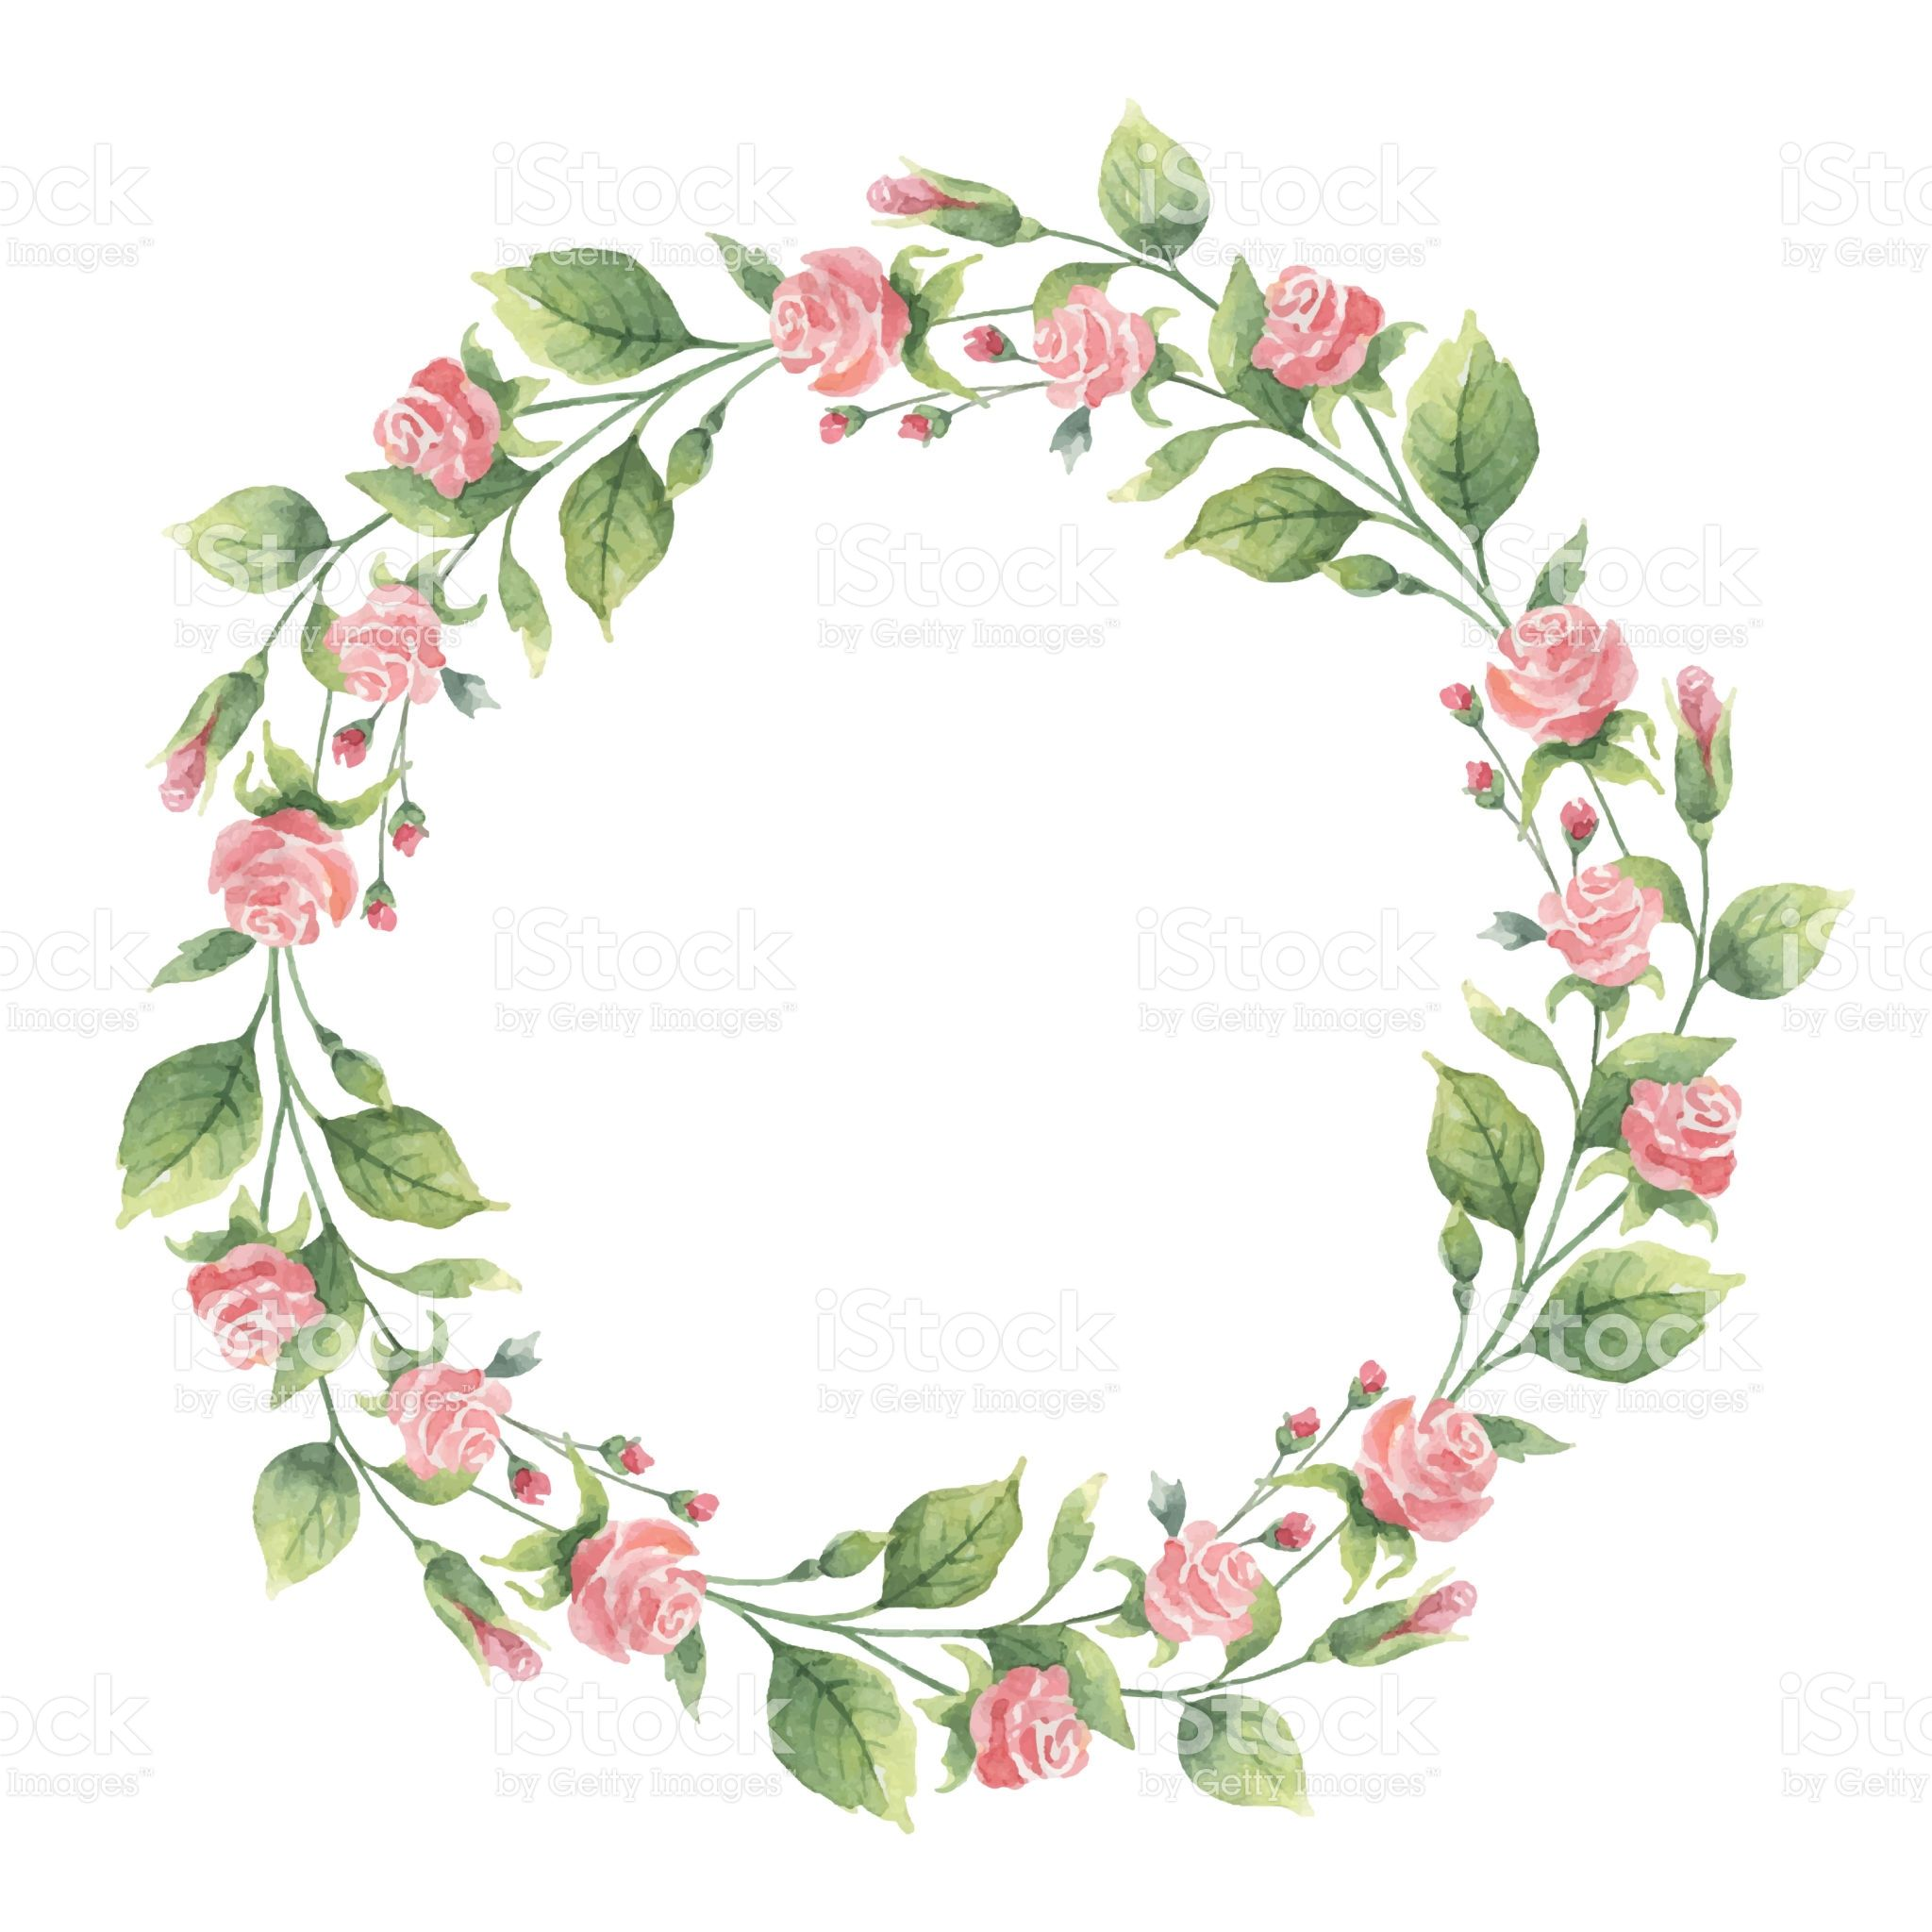 Watercolor hand painted vector wreath of green branches